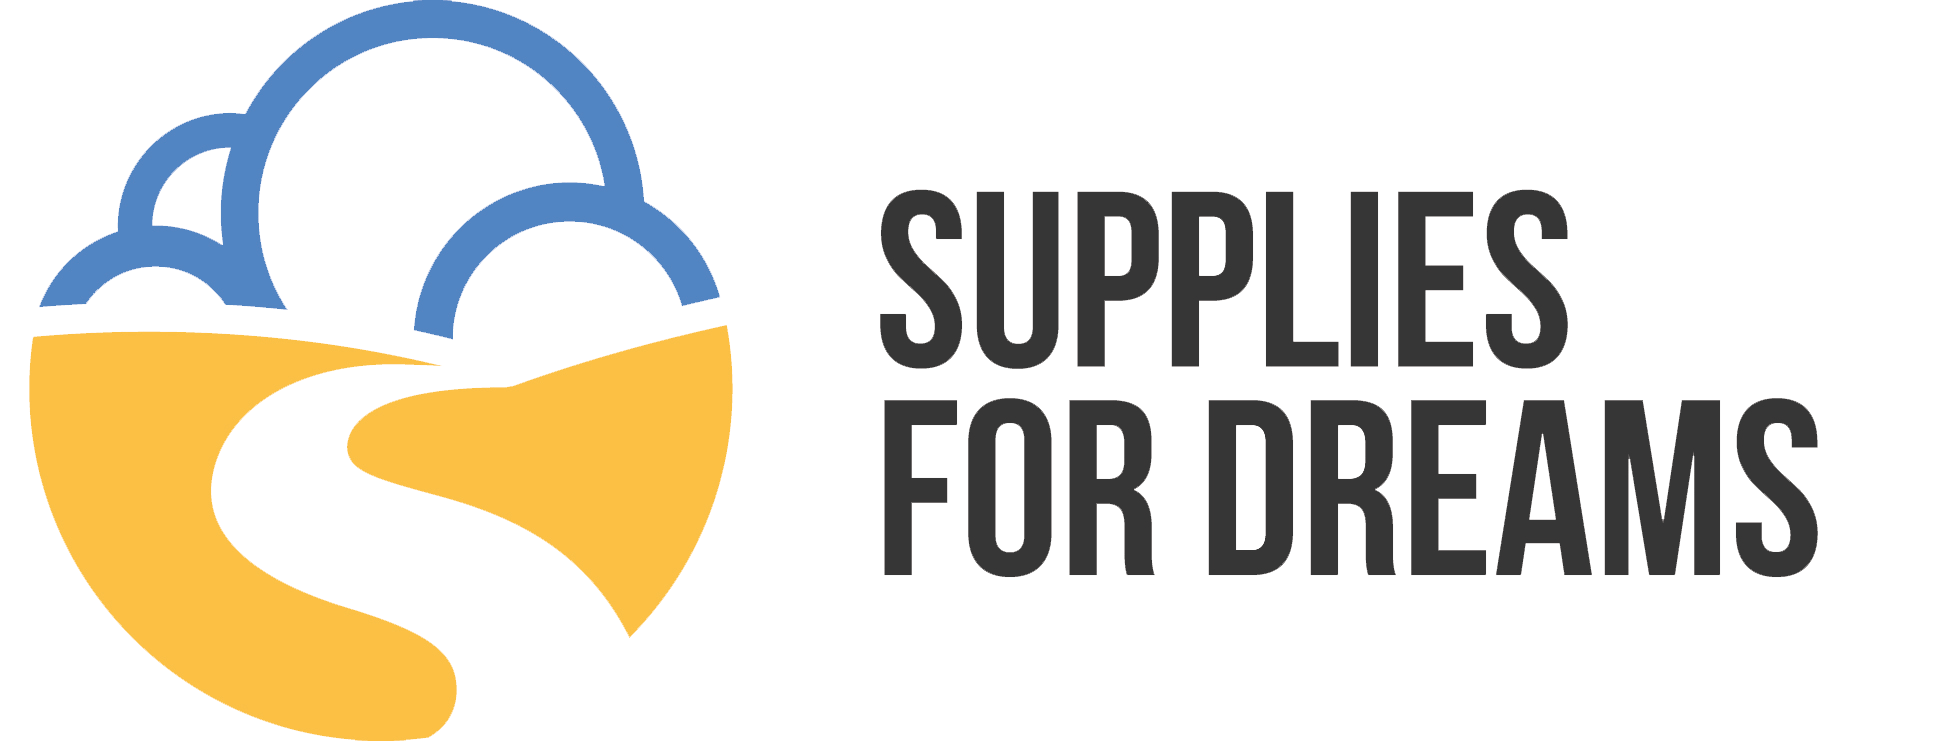 Supplies for Dreams logo